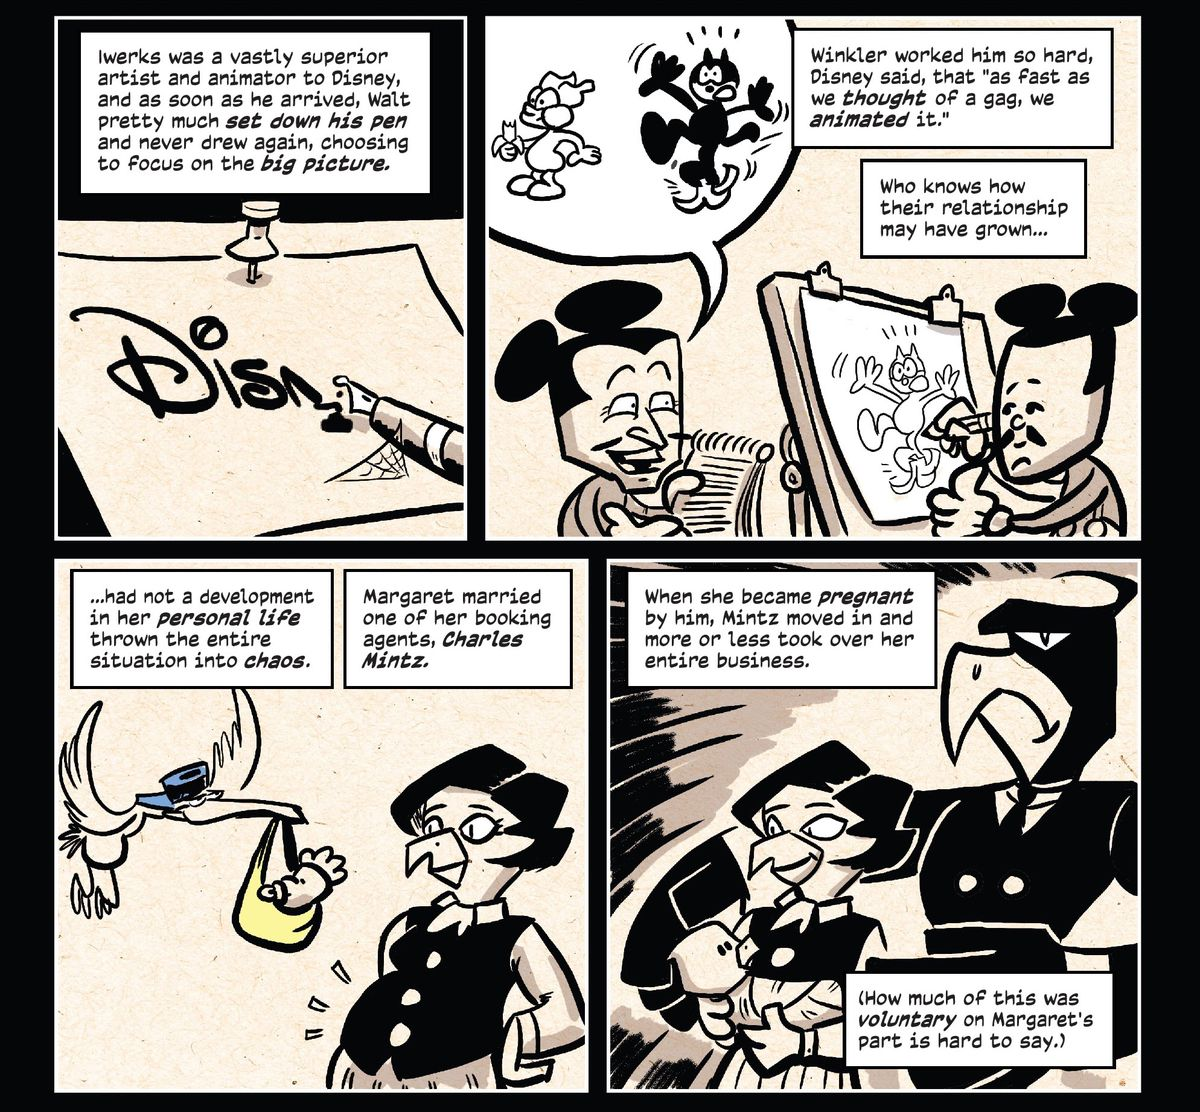 Four panels describe an early relationship with Walt Disney and Margaret Mintz, a rare woman with some power in the early animation industry, until her new husband took over her entire business, in The Comic Book History of Animation #1, IDW Publications (2020).